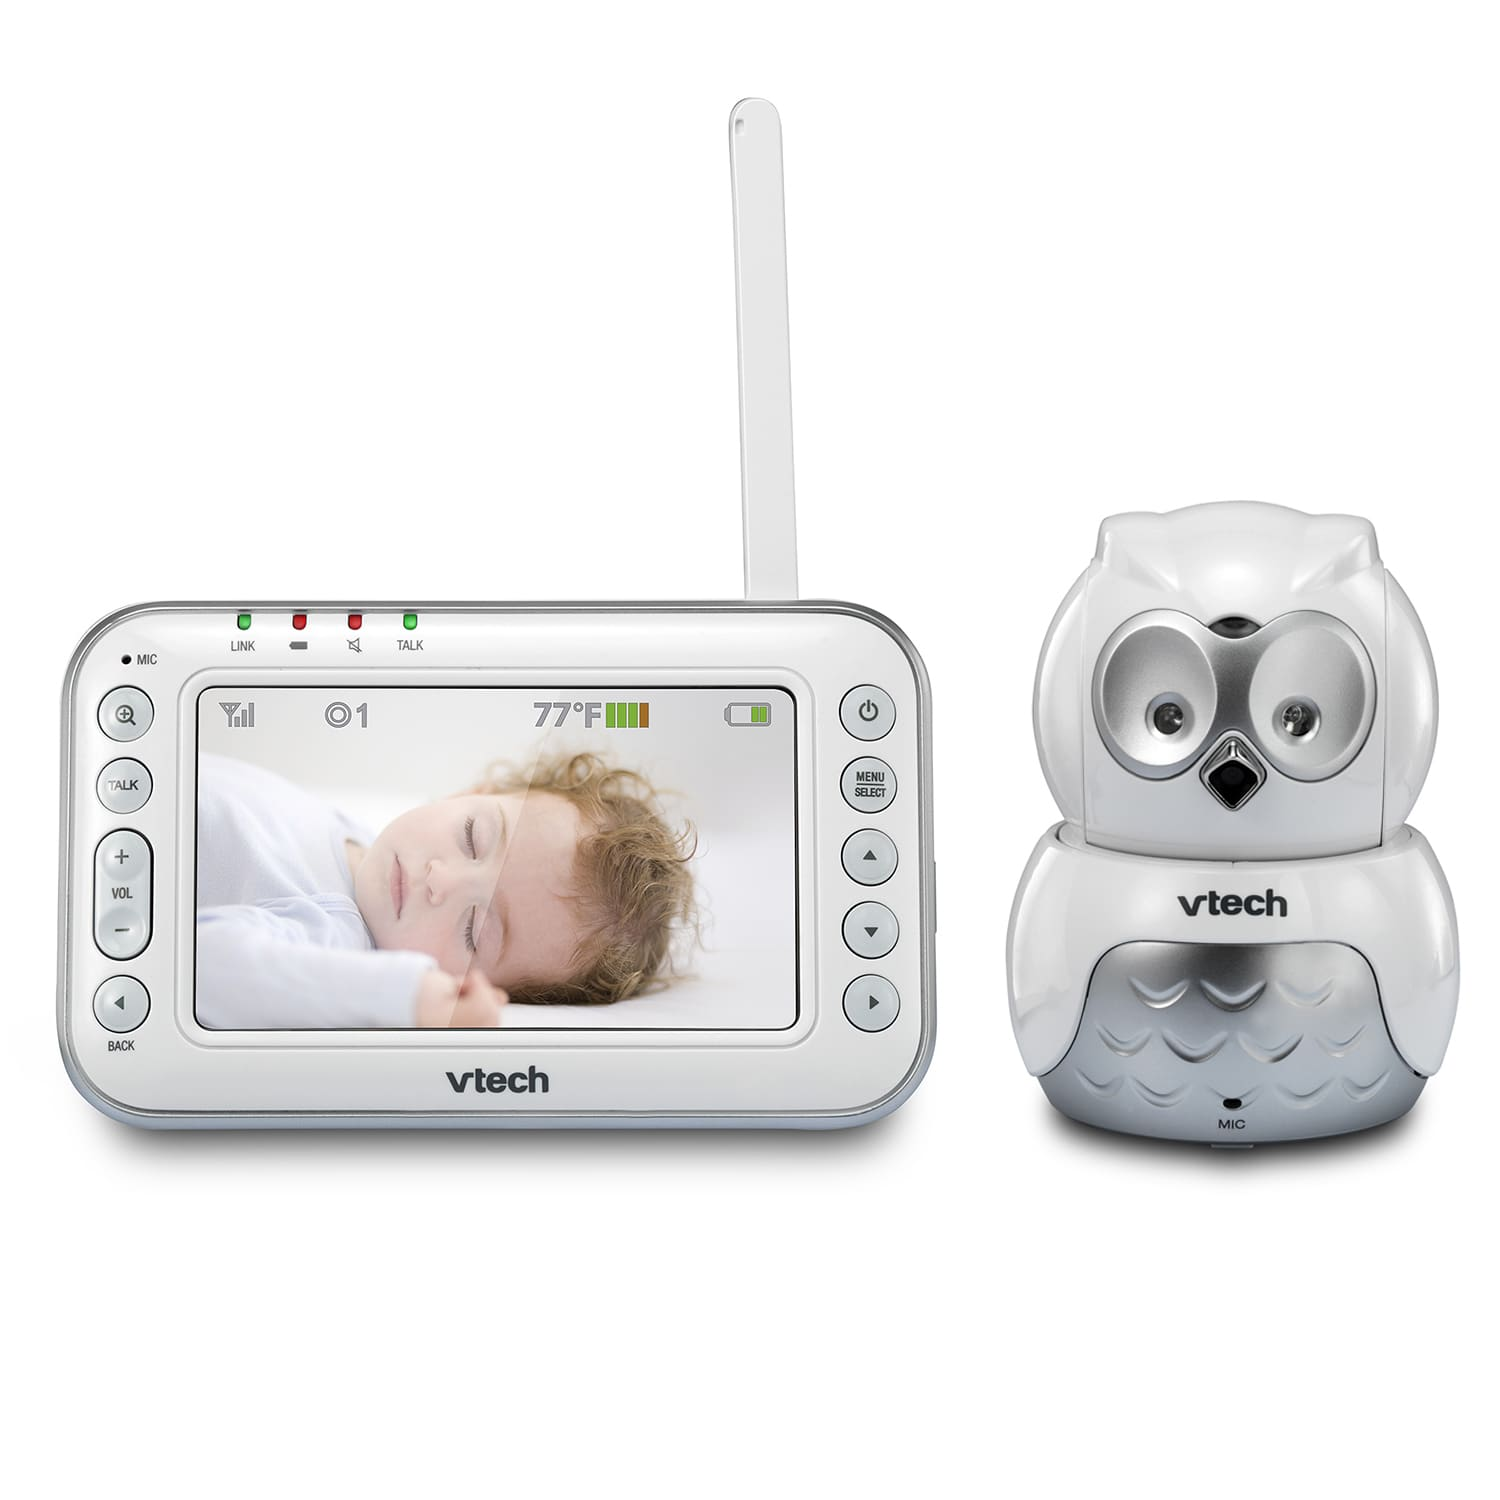 VTech Video Baby Monitor ONLY $89.99 (Reg $176) Shipped